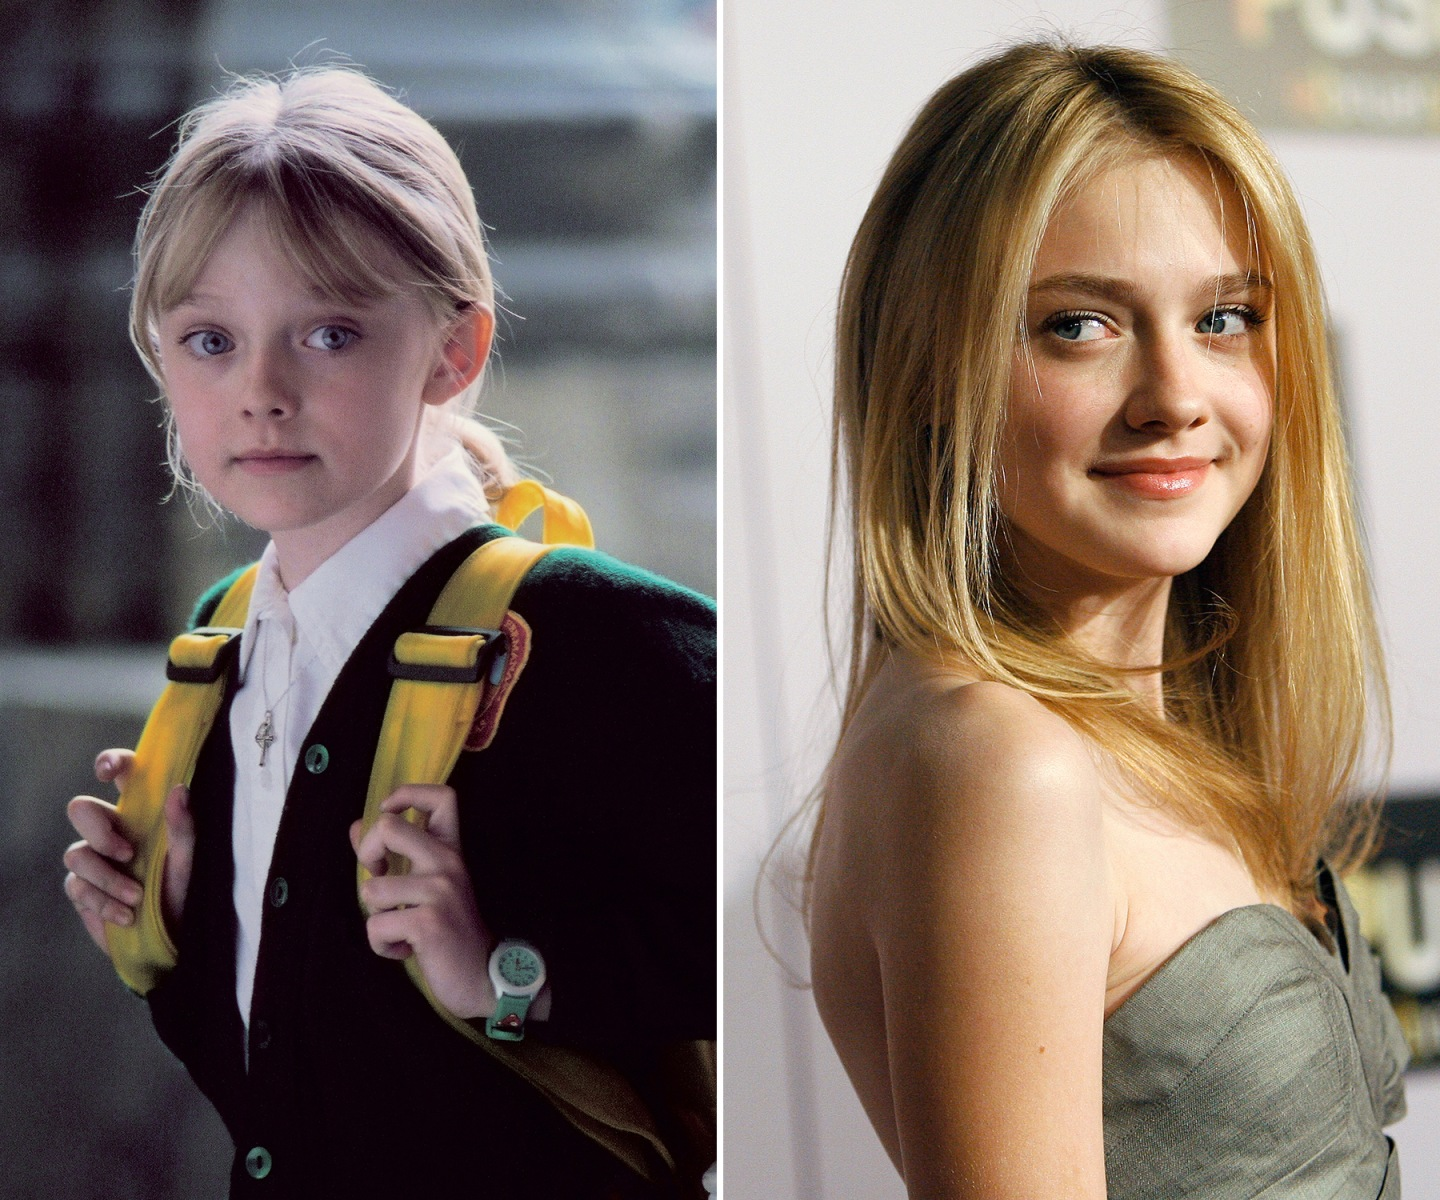 New hot celebrity pictures as children